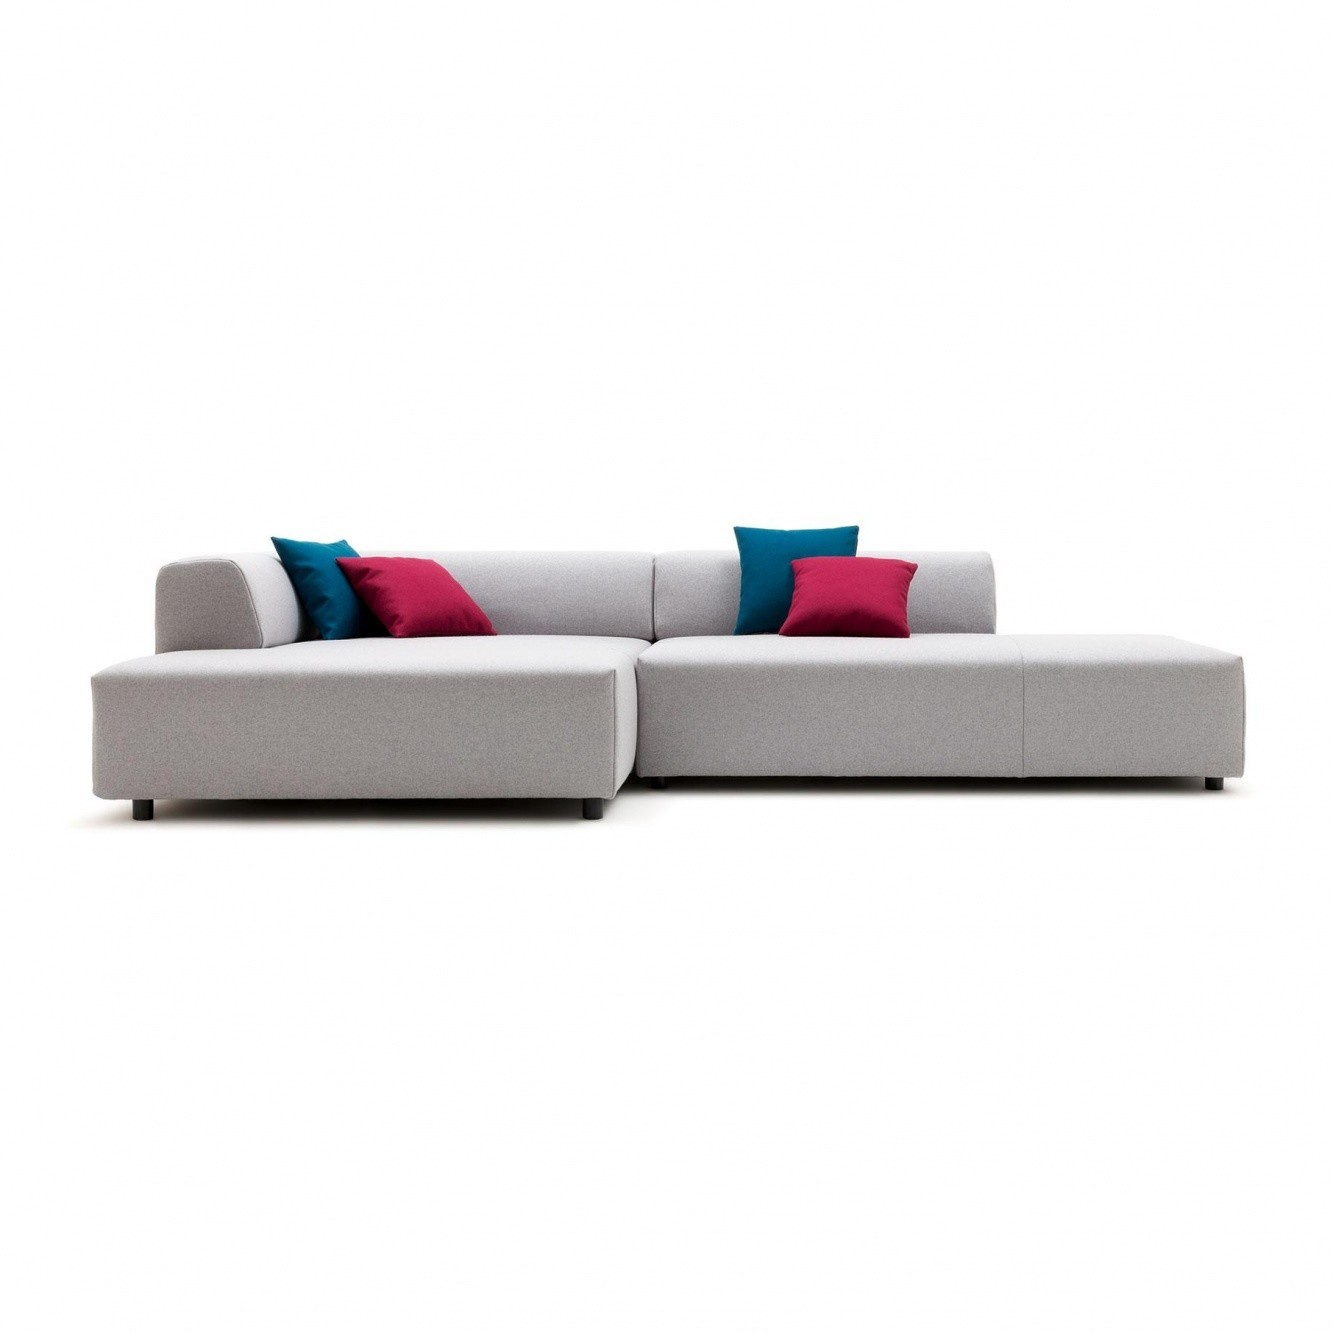 Rolf Benz Sofa Freistil Freistil 184 Lounge Sofa